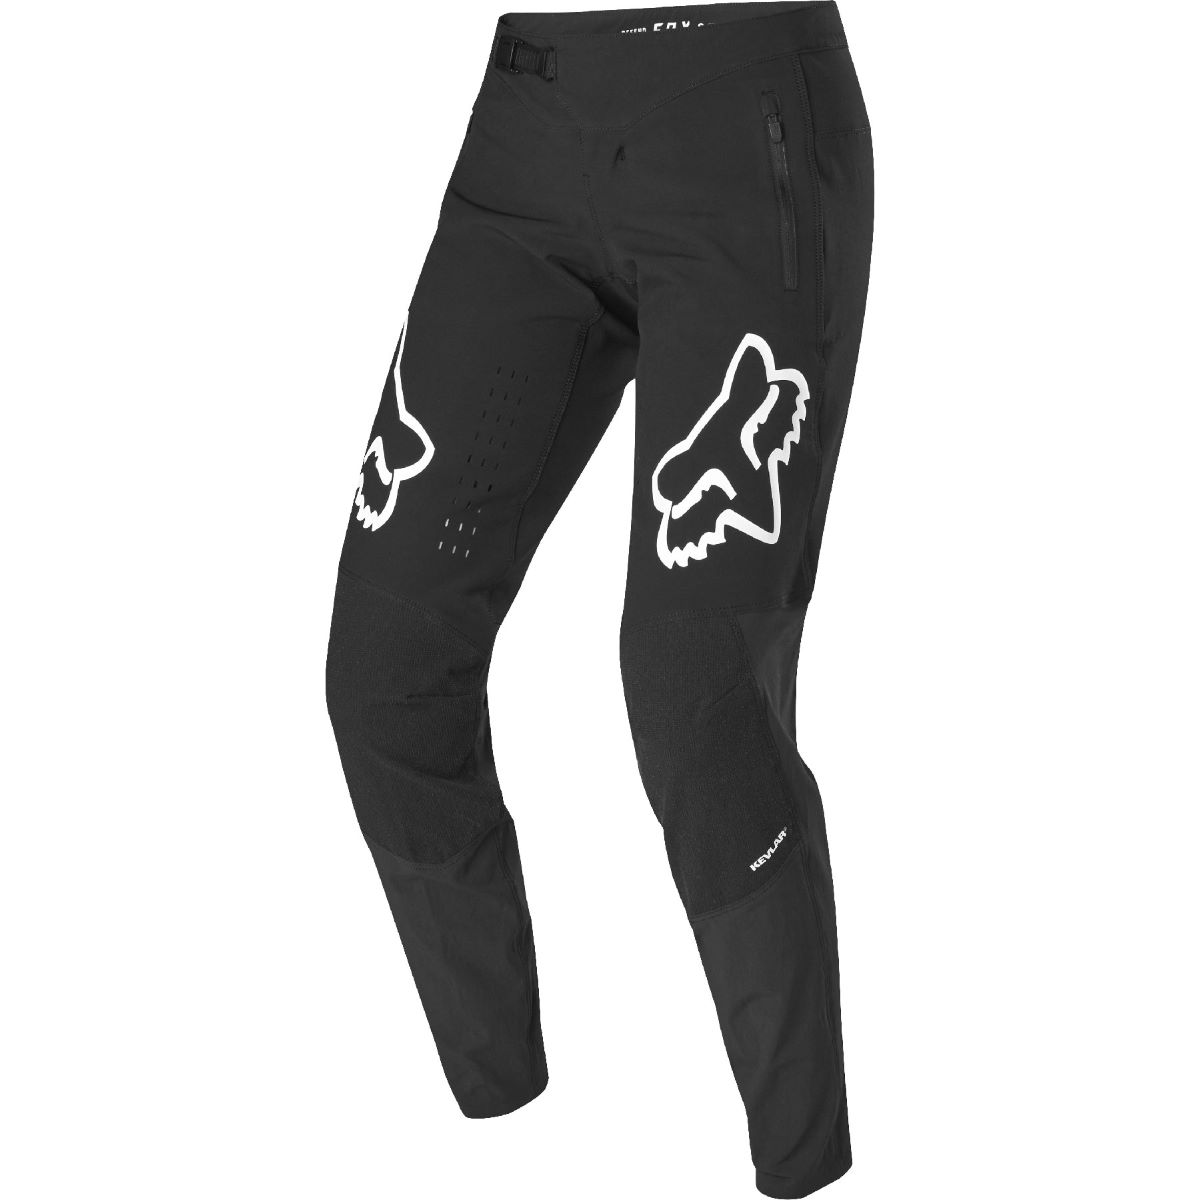 Fox Racing Women's Defend Kevlar Trousers – S Black | Trousers